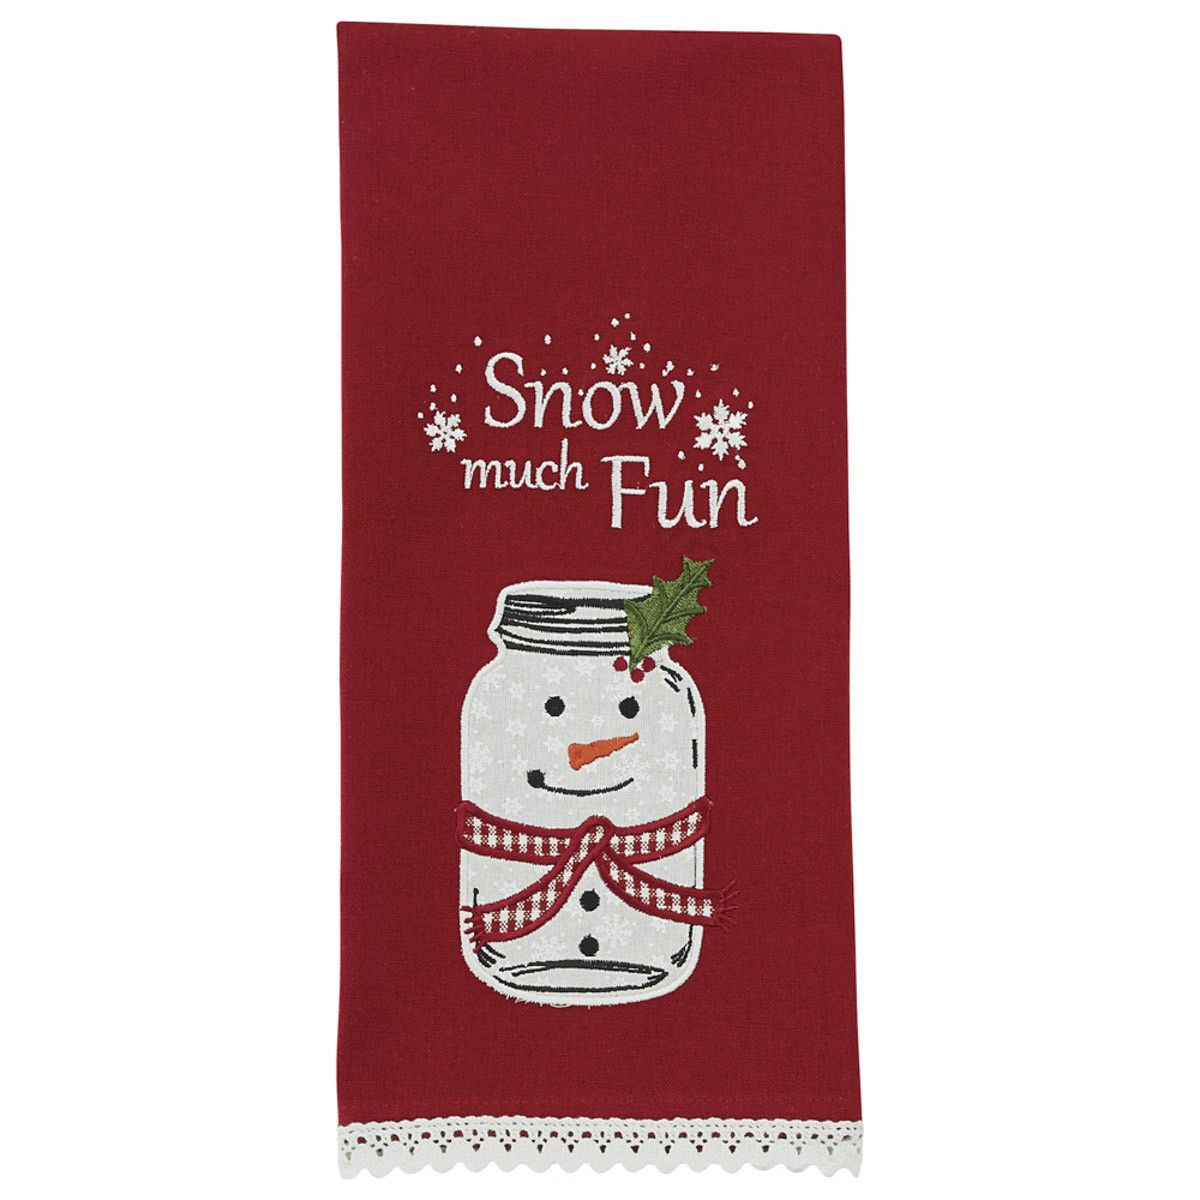 Park Designs Dish Towel - Snow Much Fun